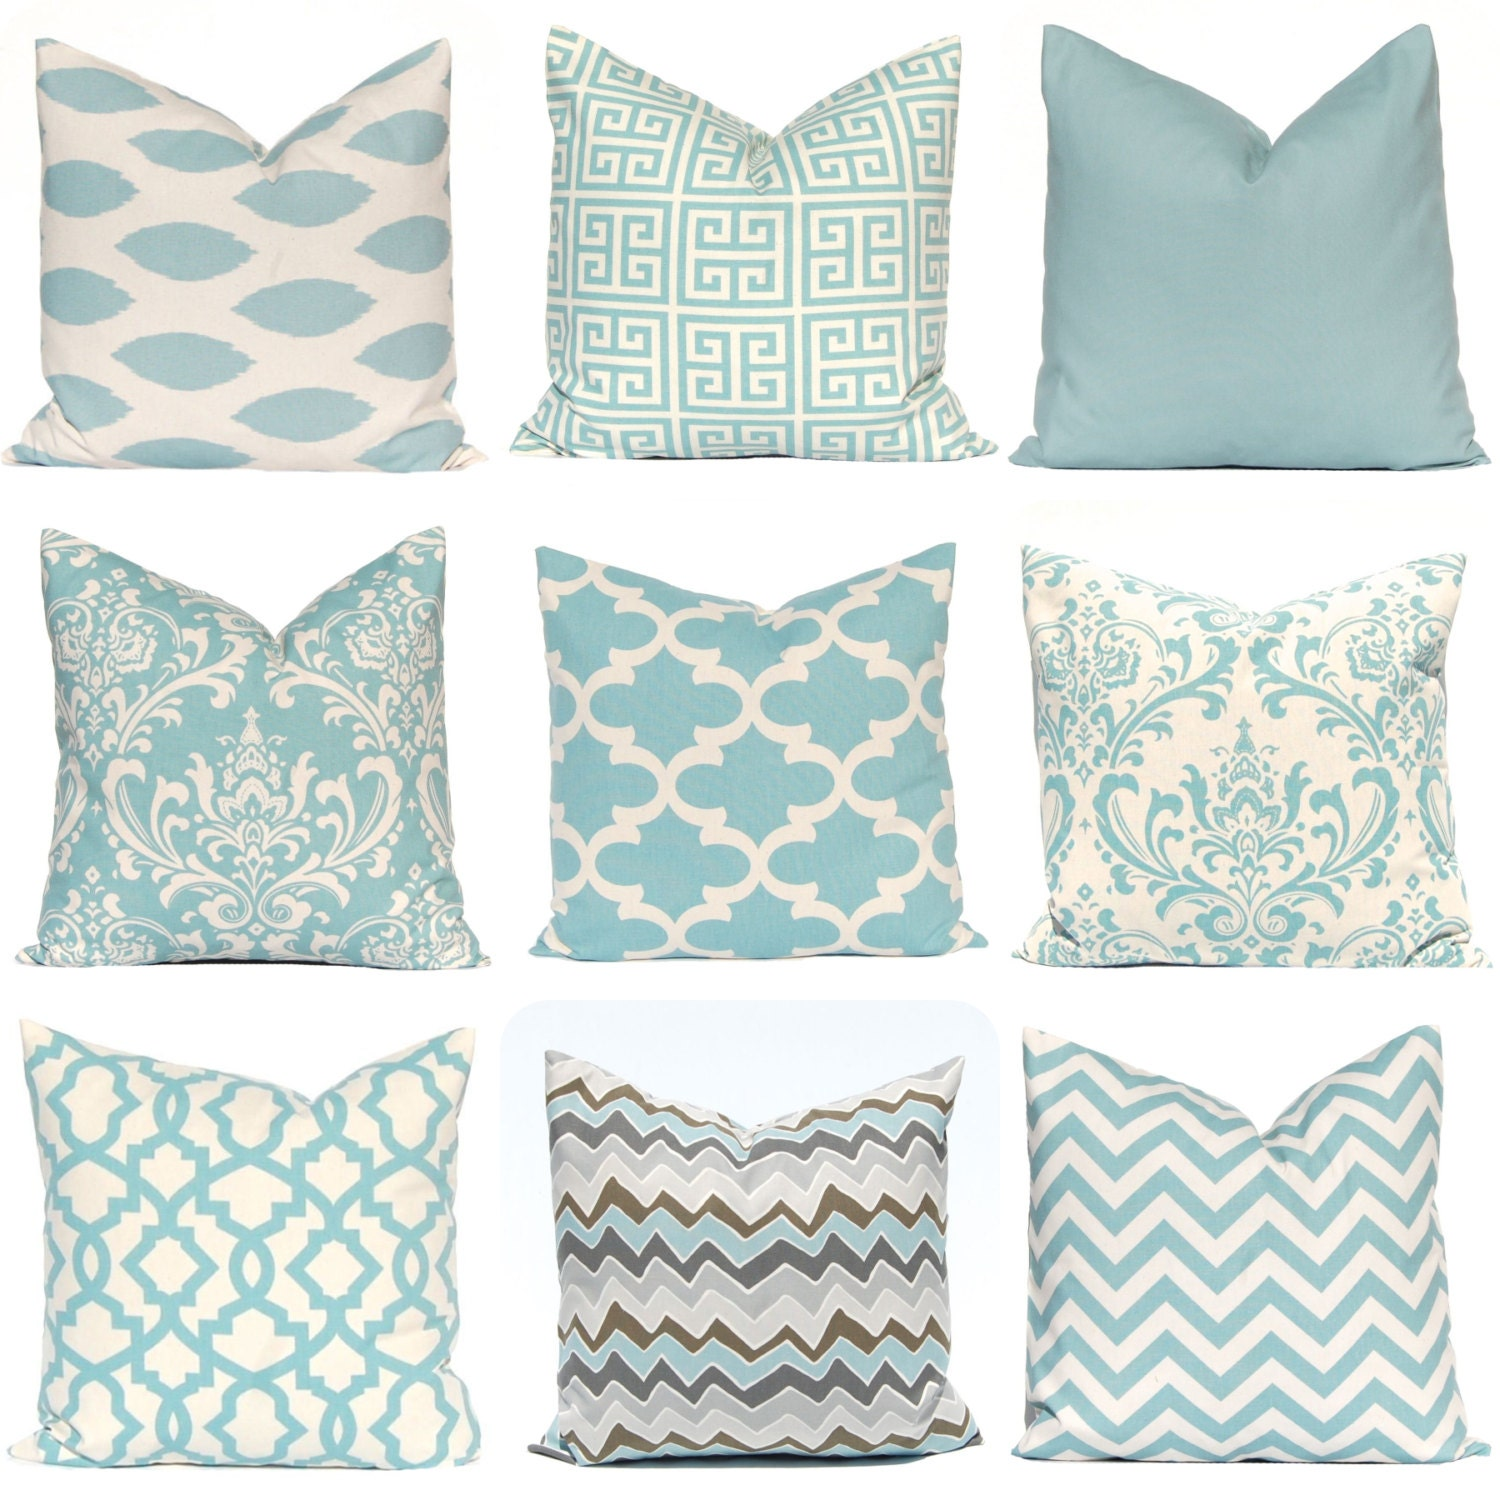 ideas with pillows new pillow castawaycovedecor brown by throw and blue covers